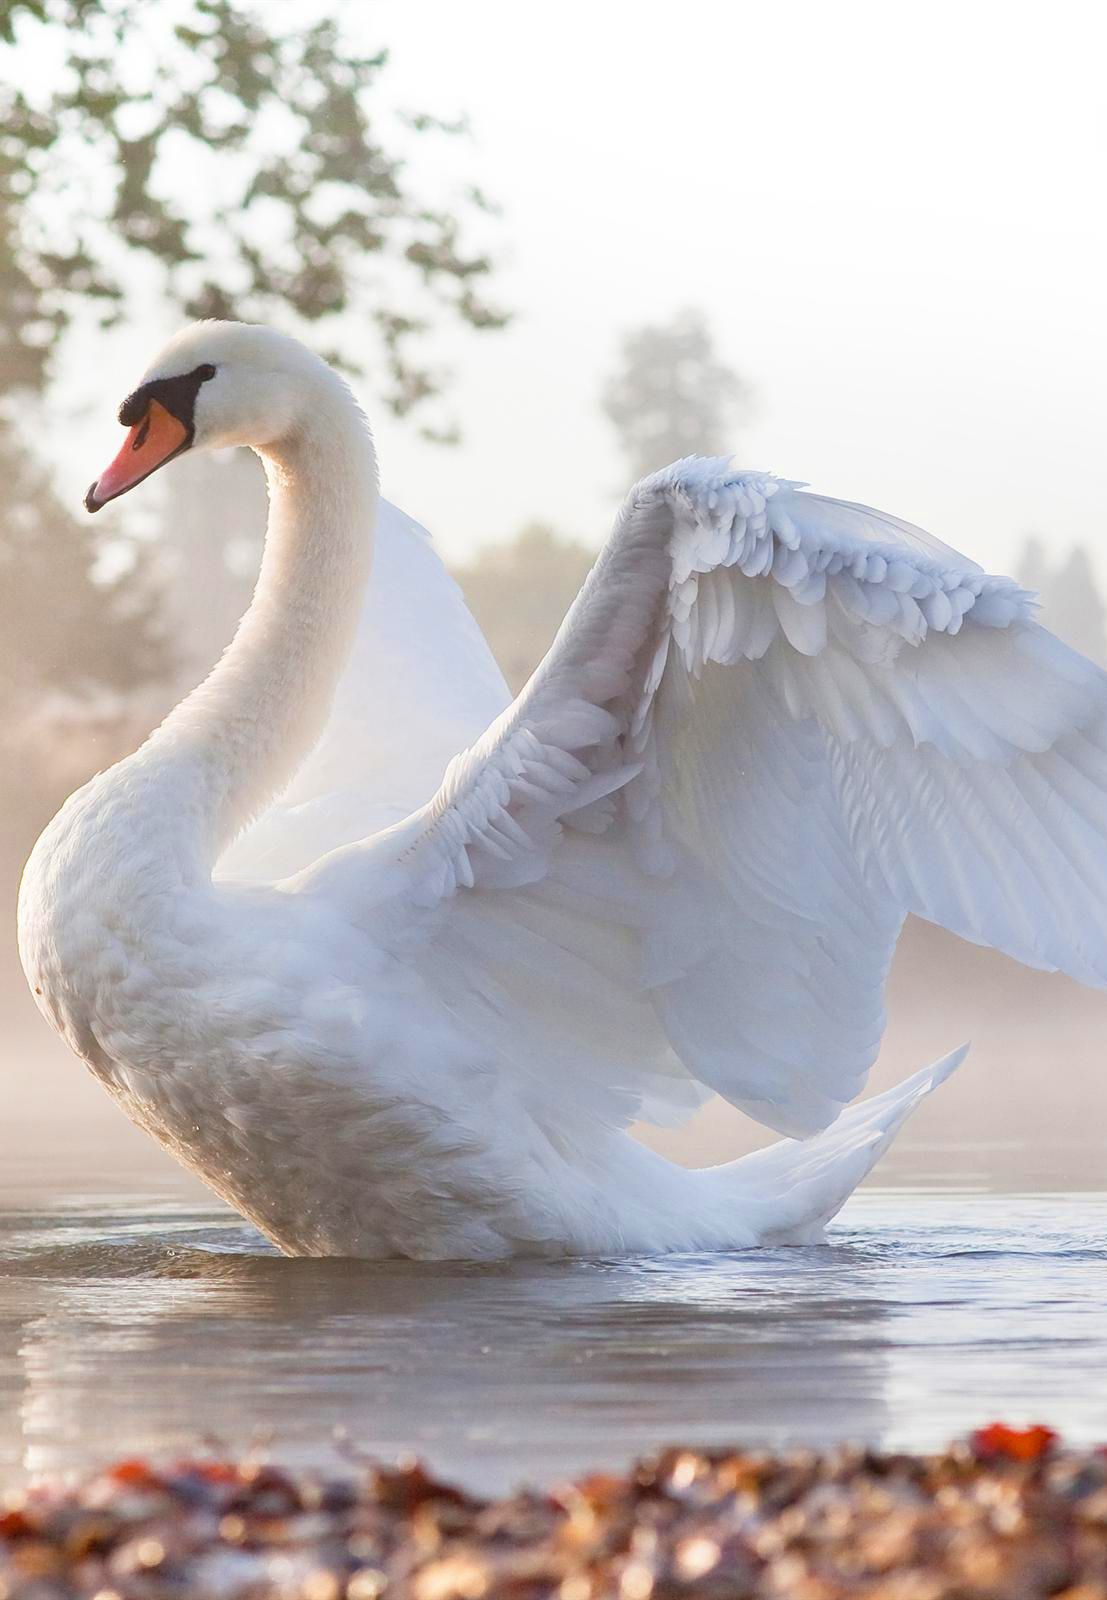 Beautiful Swan Makes Me Think Of The Swans In Springbank